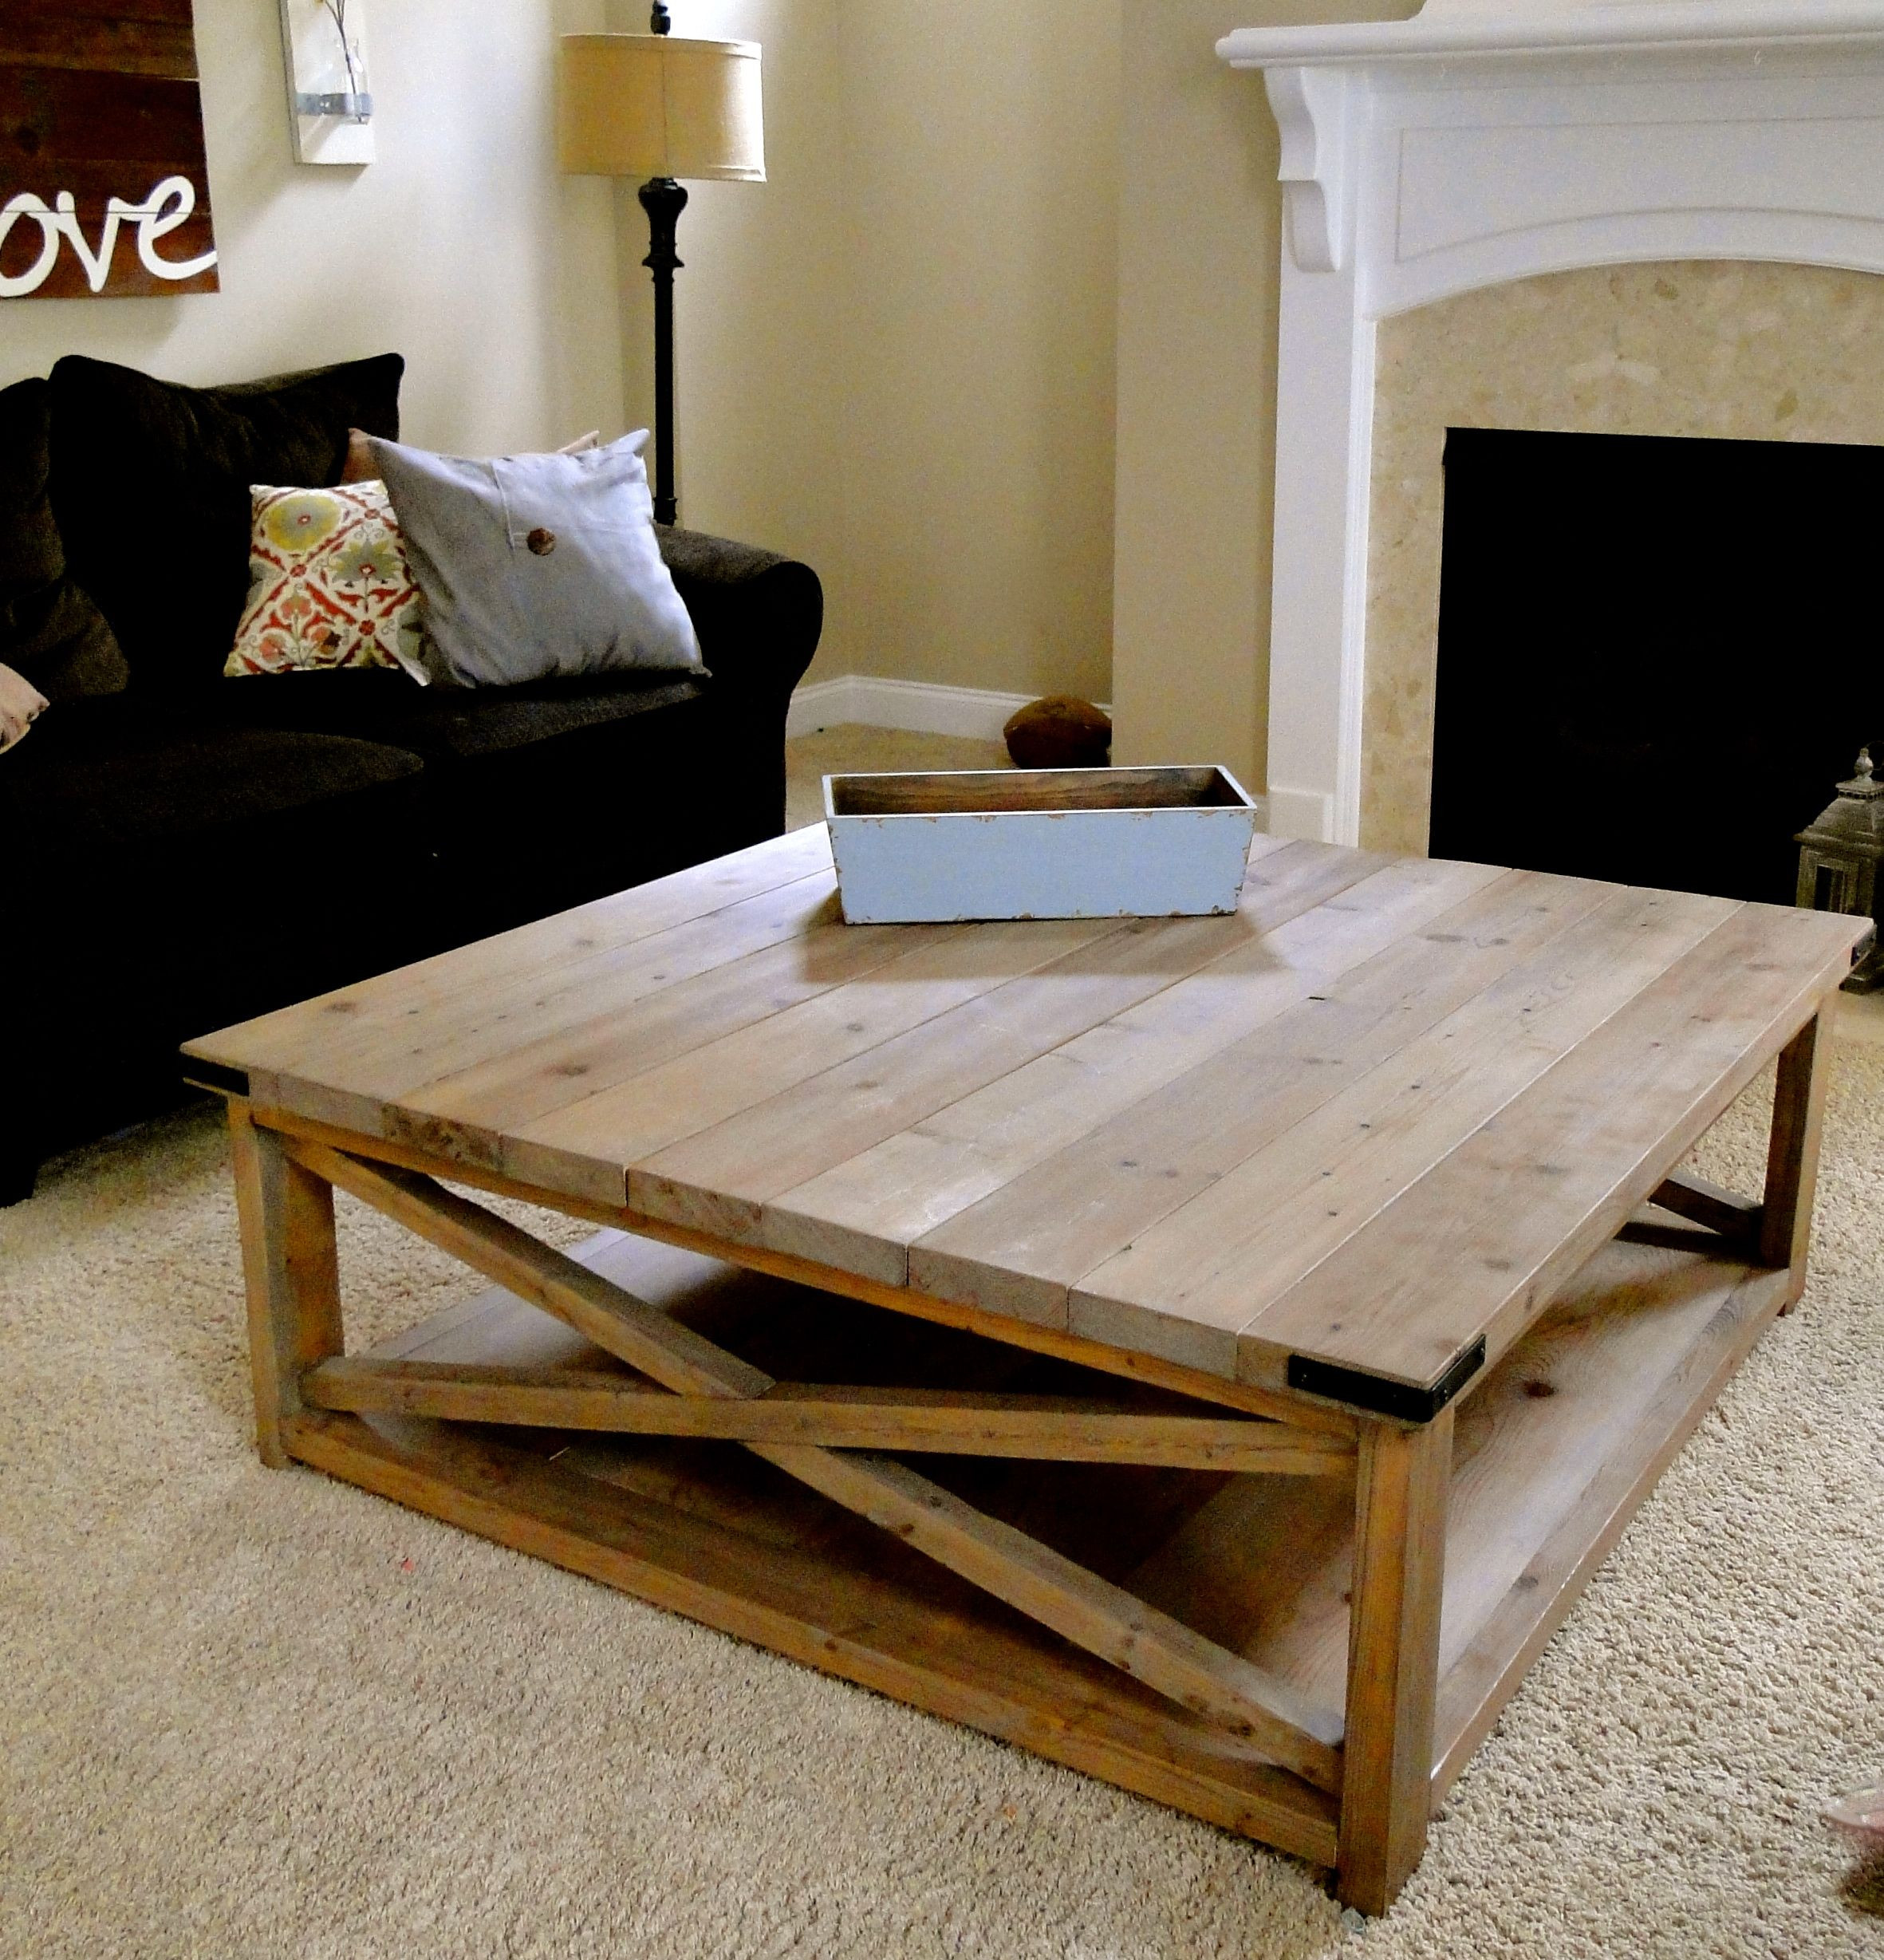 Best ideas about DIY Coffee Table Pinterest . Save or Pin Crazy beautiful DIY coffee table Now.